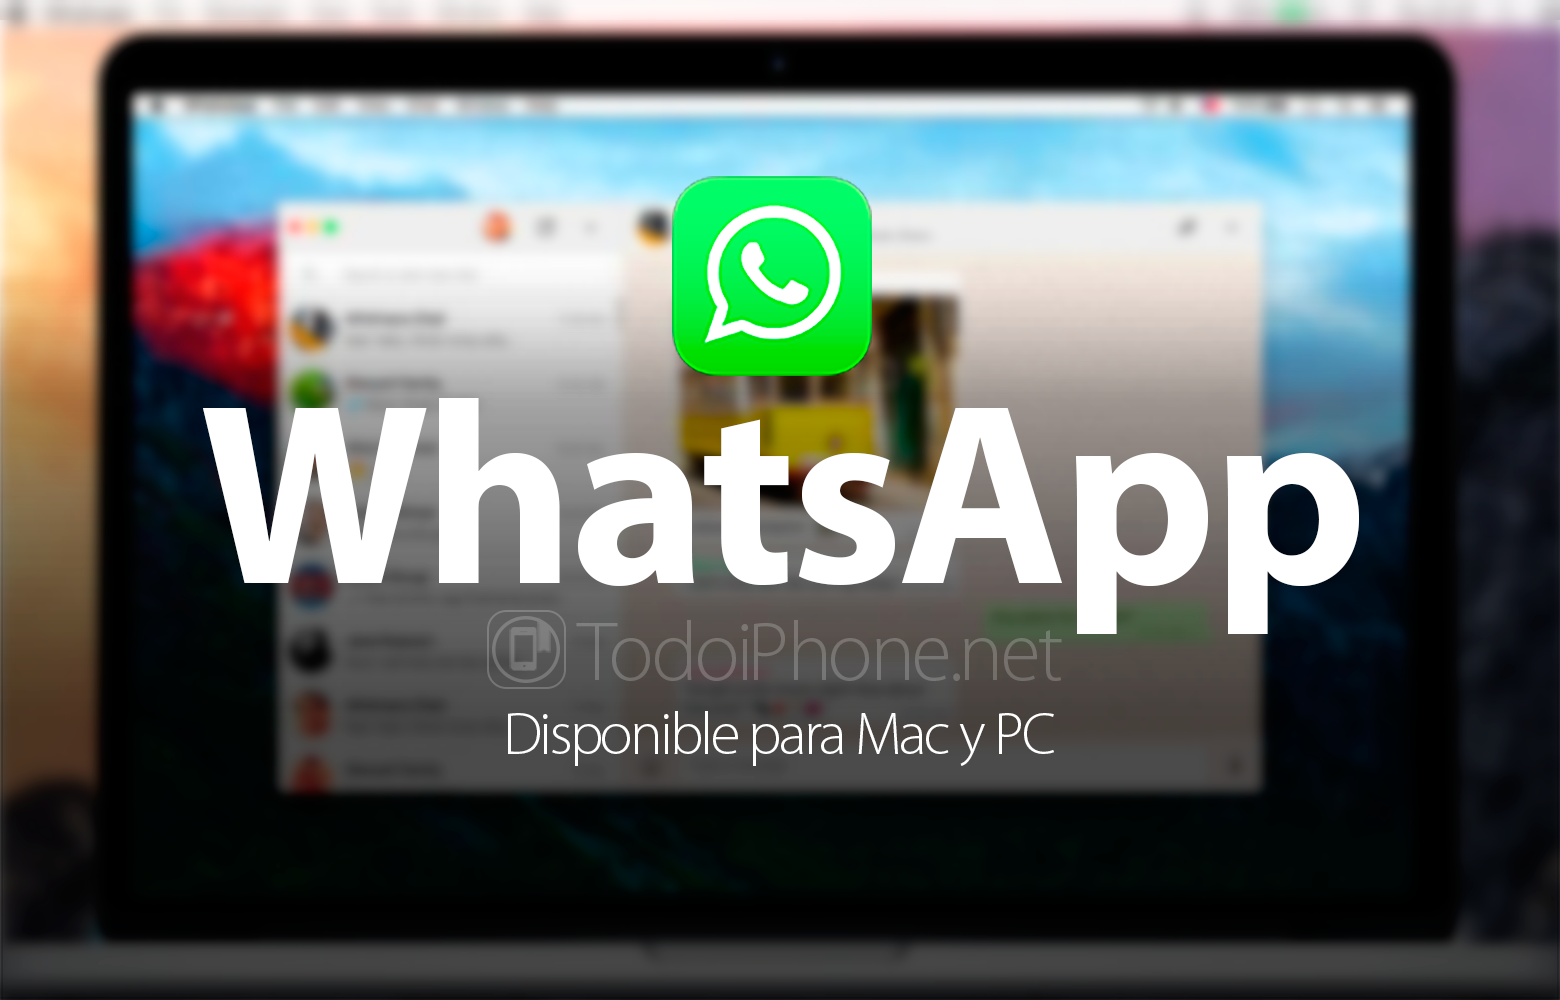 whatsapp-mac-pc-disponible-enlaces